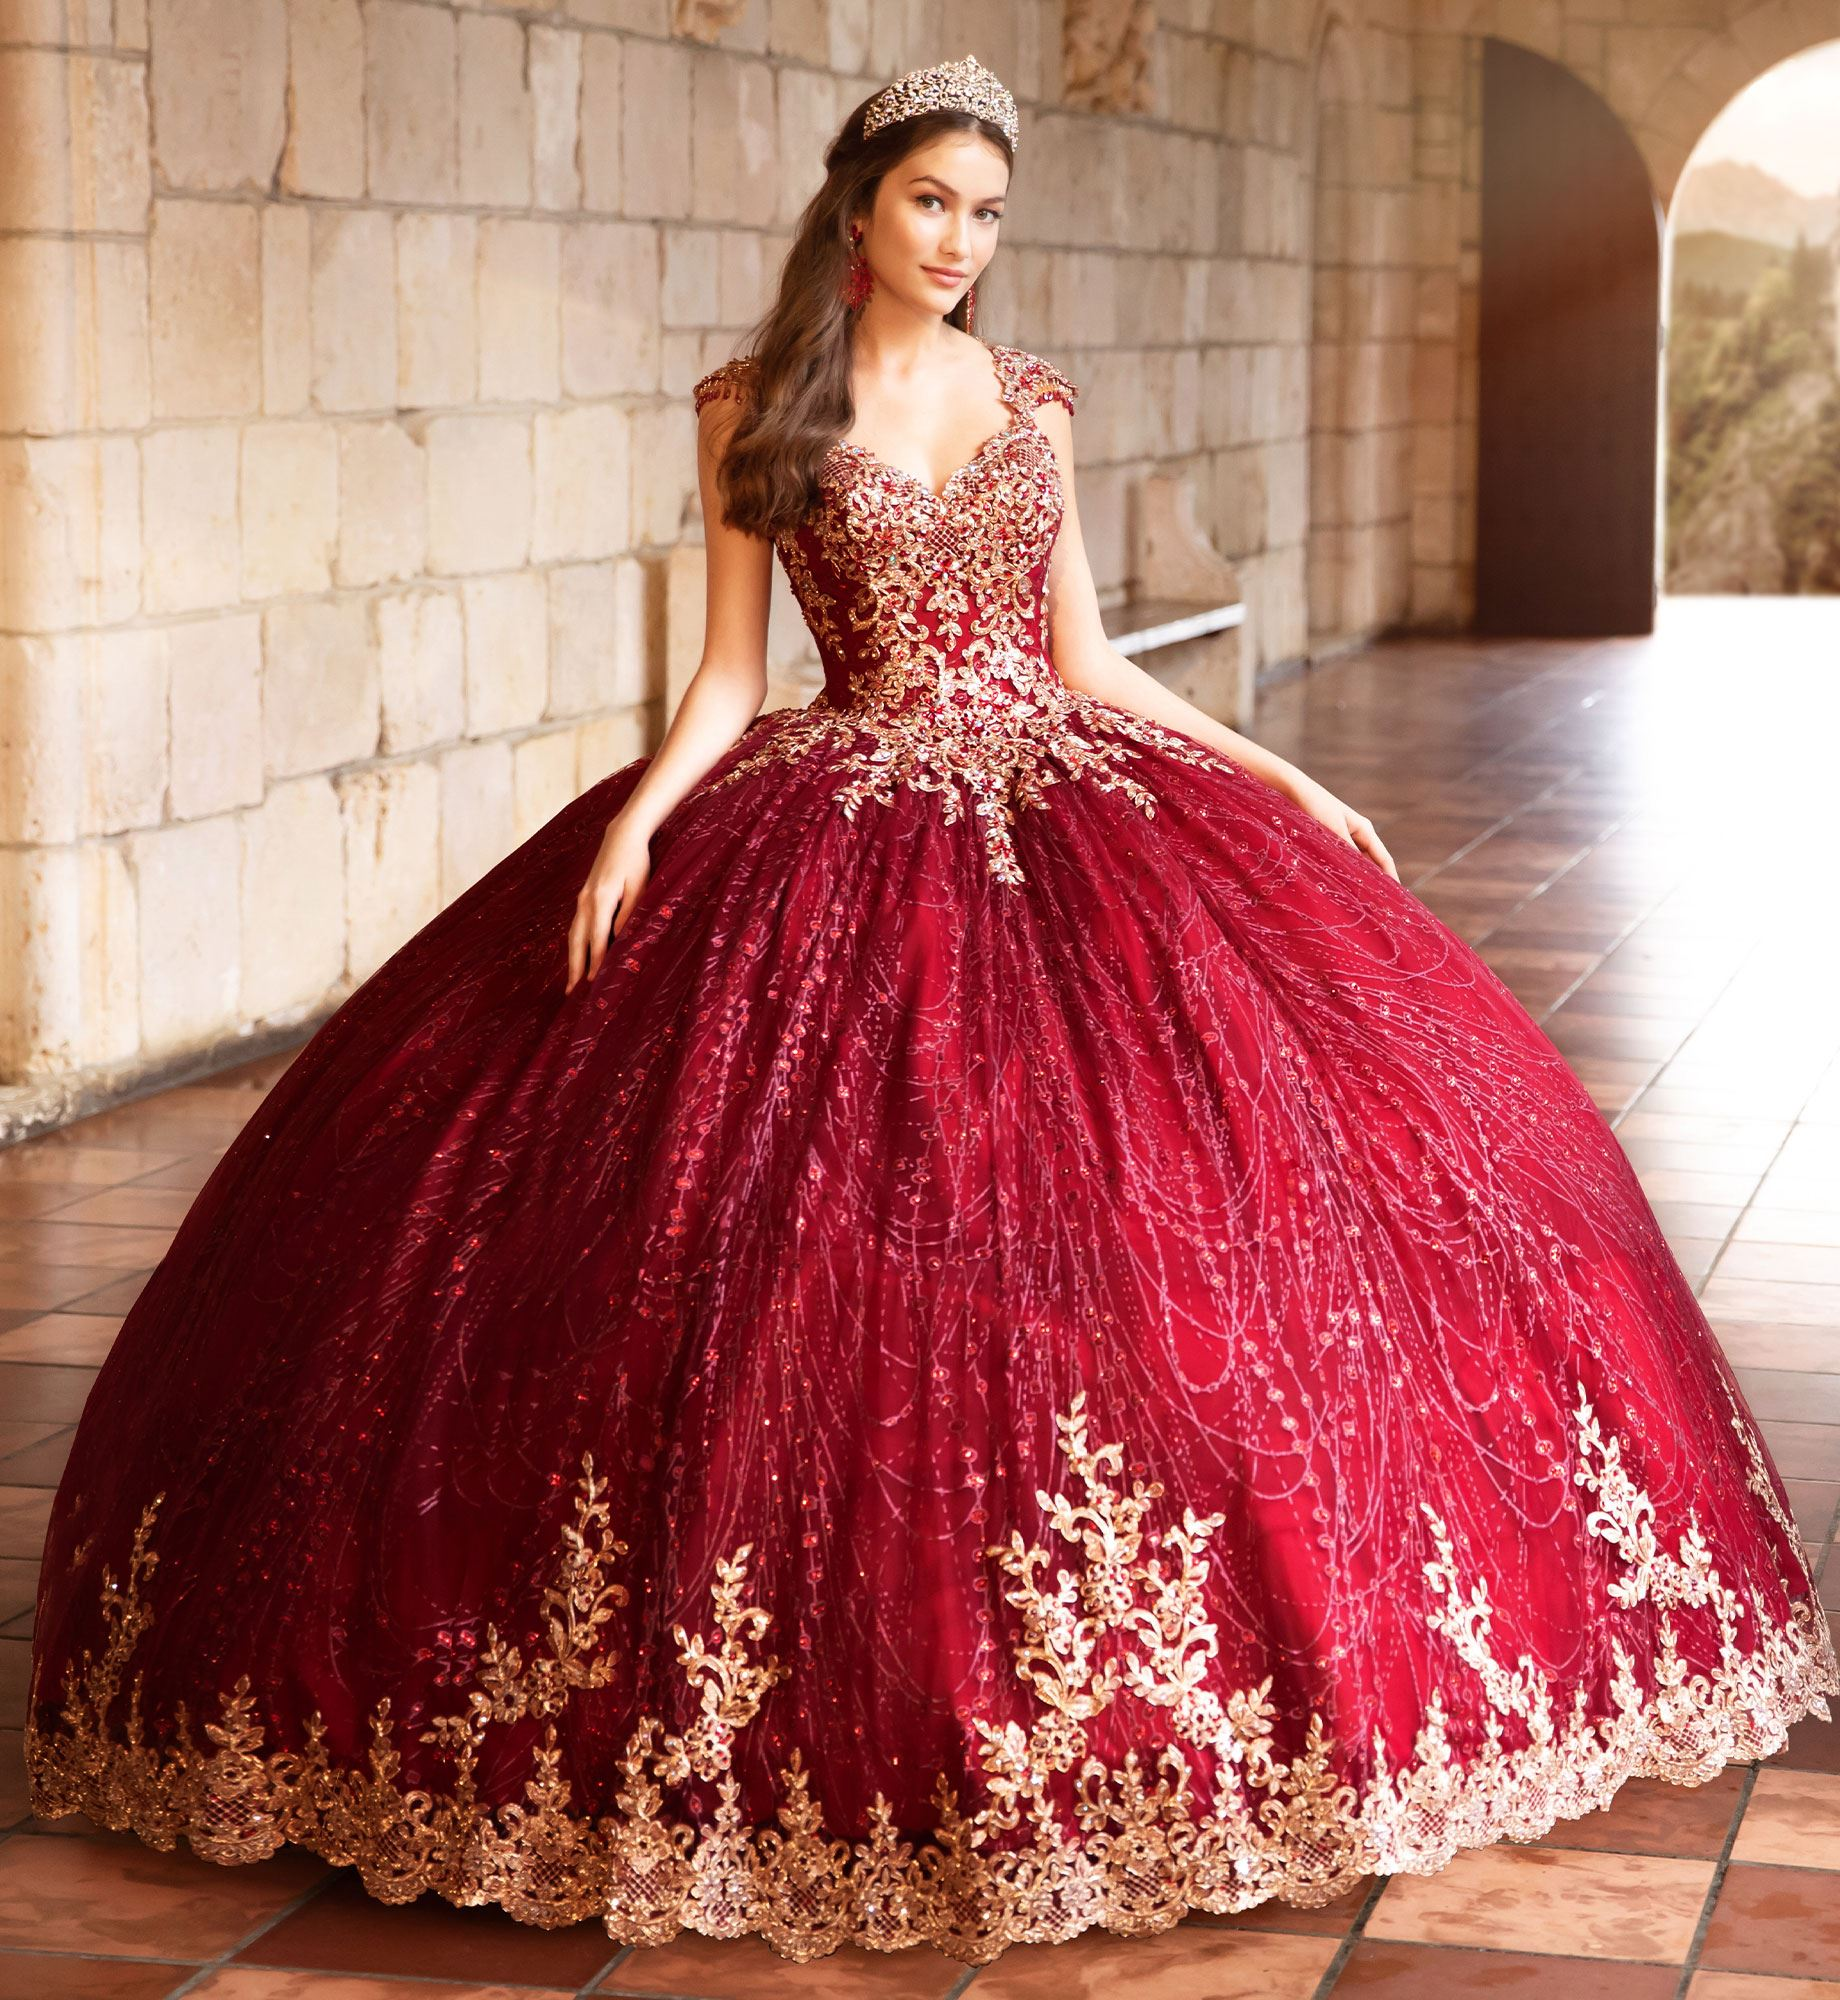 Brunette model in wine red and gold quinceañera dress